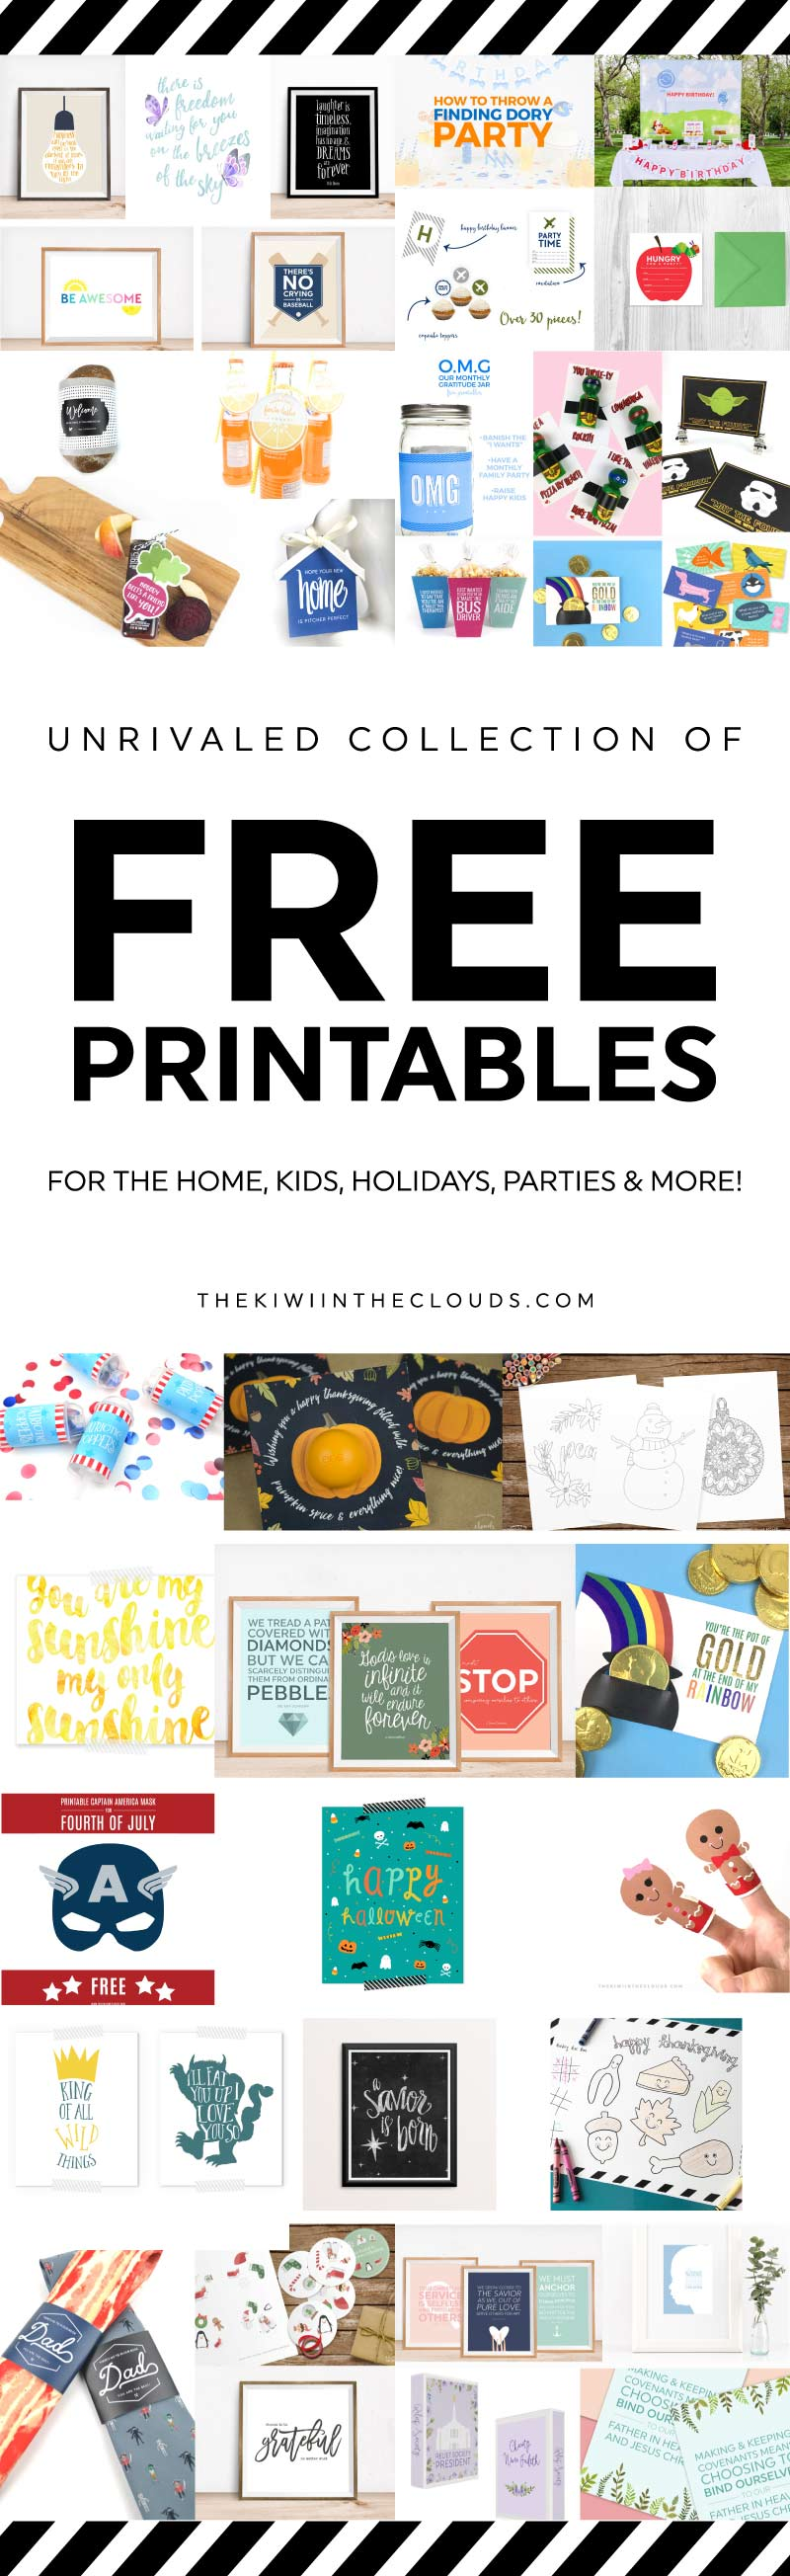 printables for the home | wall art printables | free printables